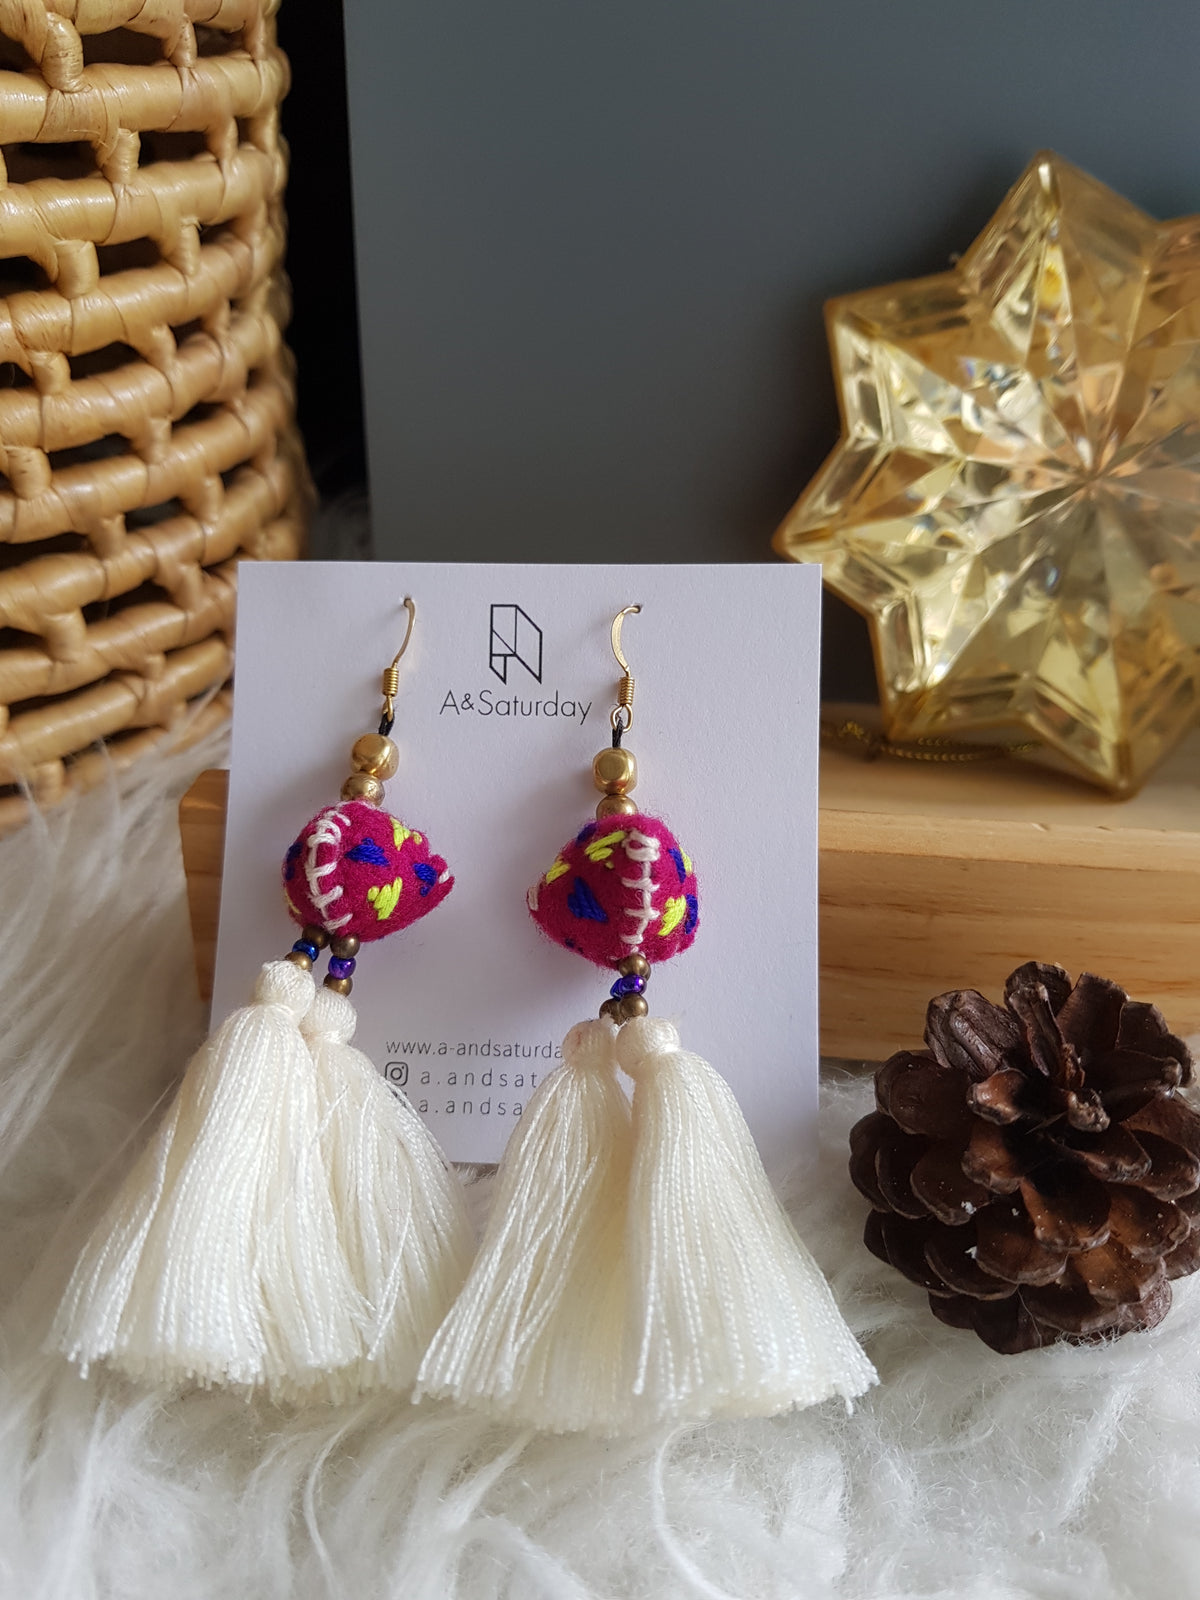 Tira Embroidered Earrings (White Tassels with Pink Felt)